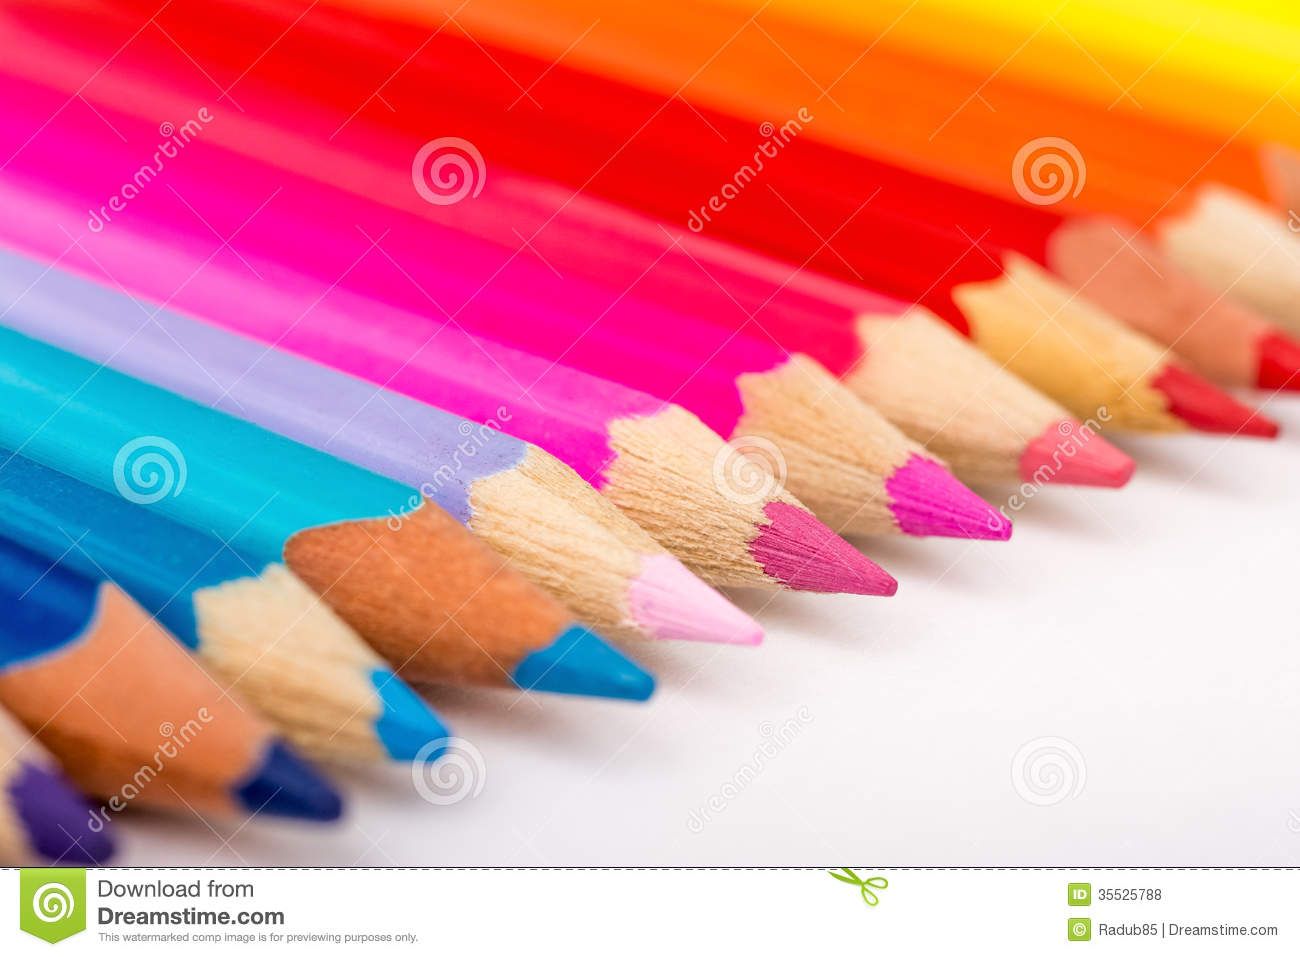 Coloring Crayons stock photo. Image of color, crayon - 35525788